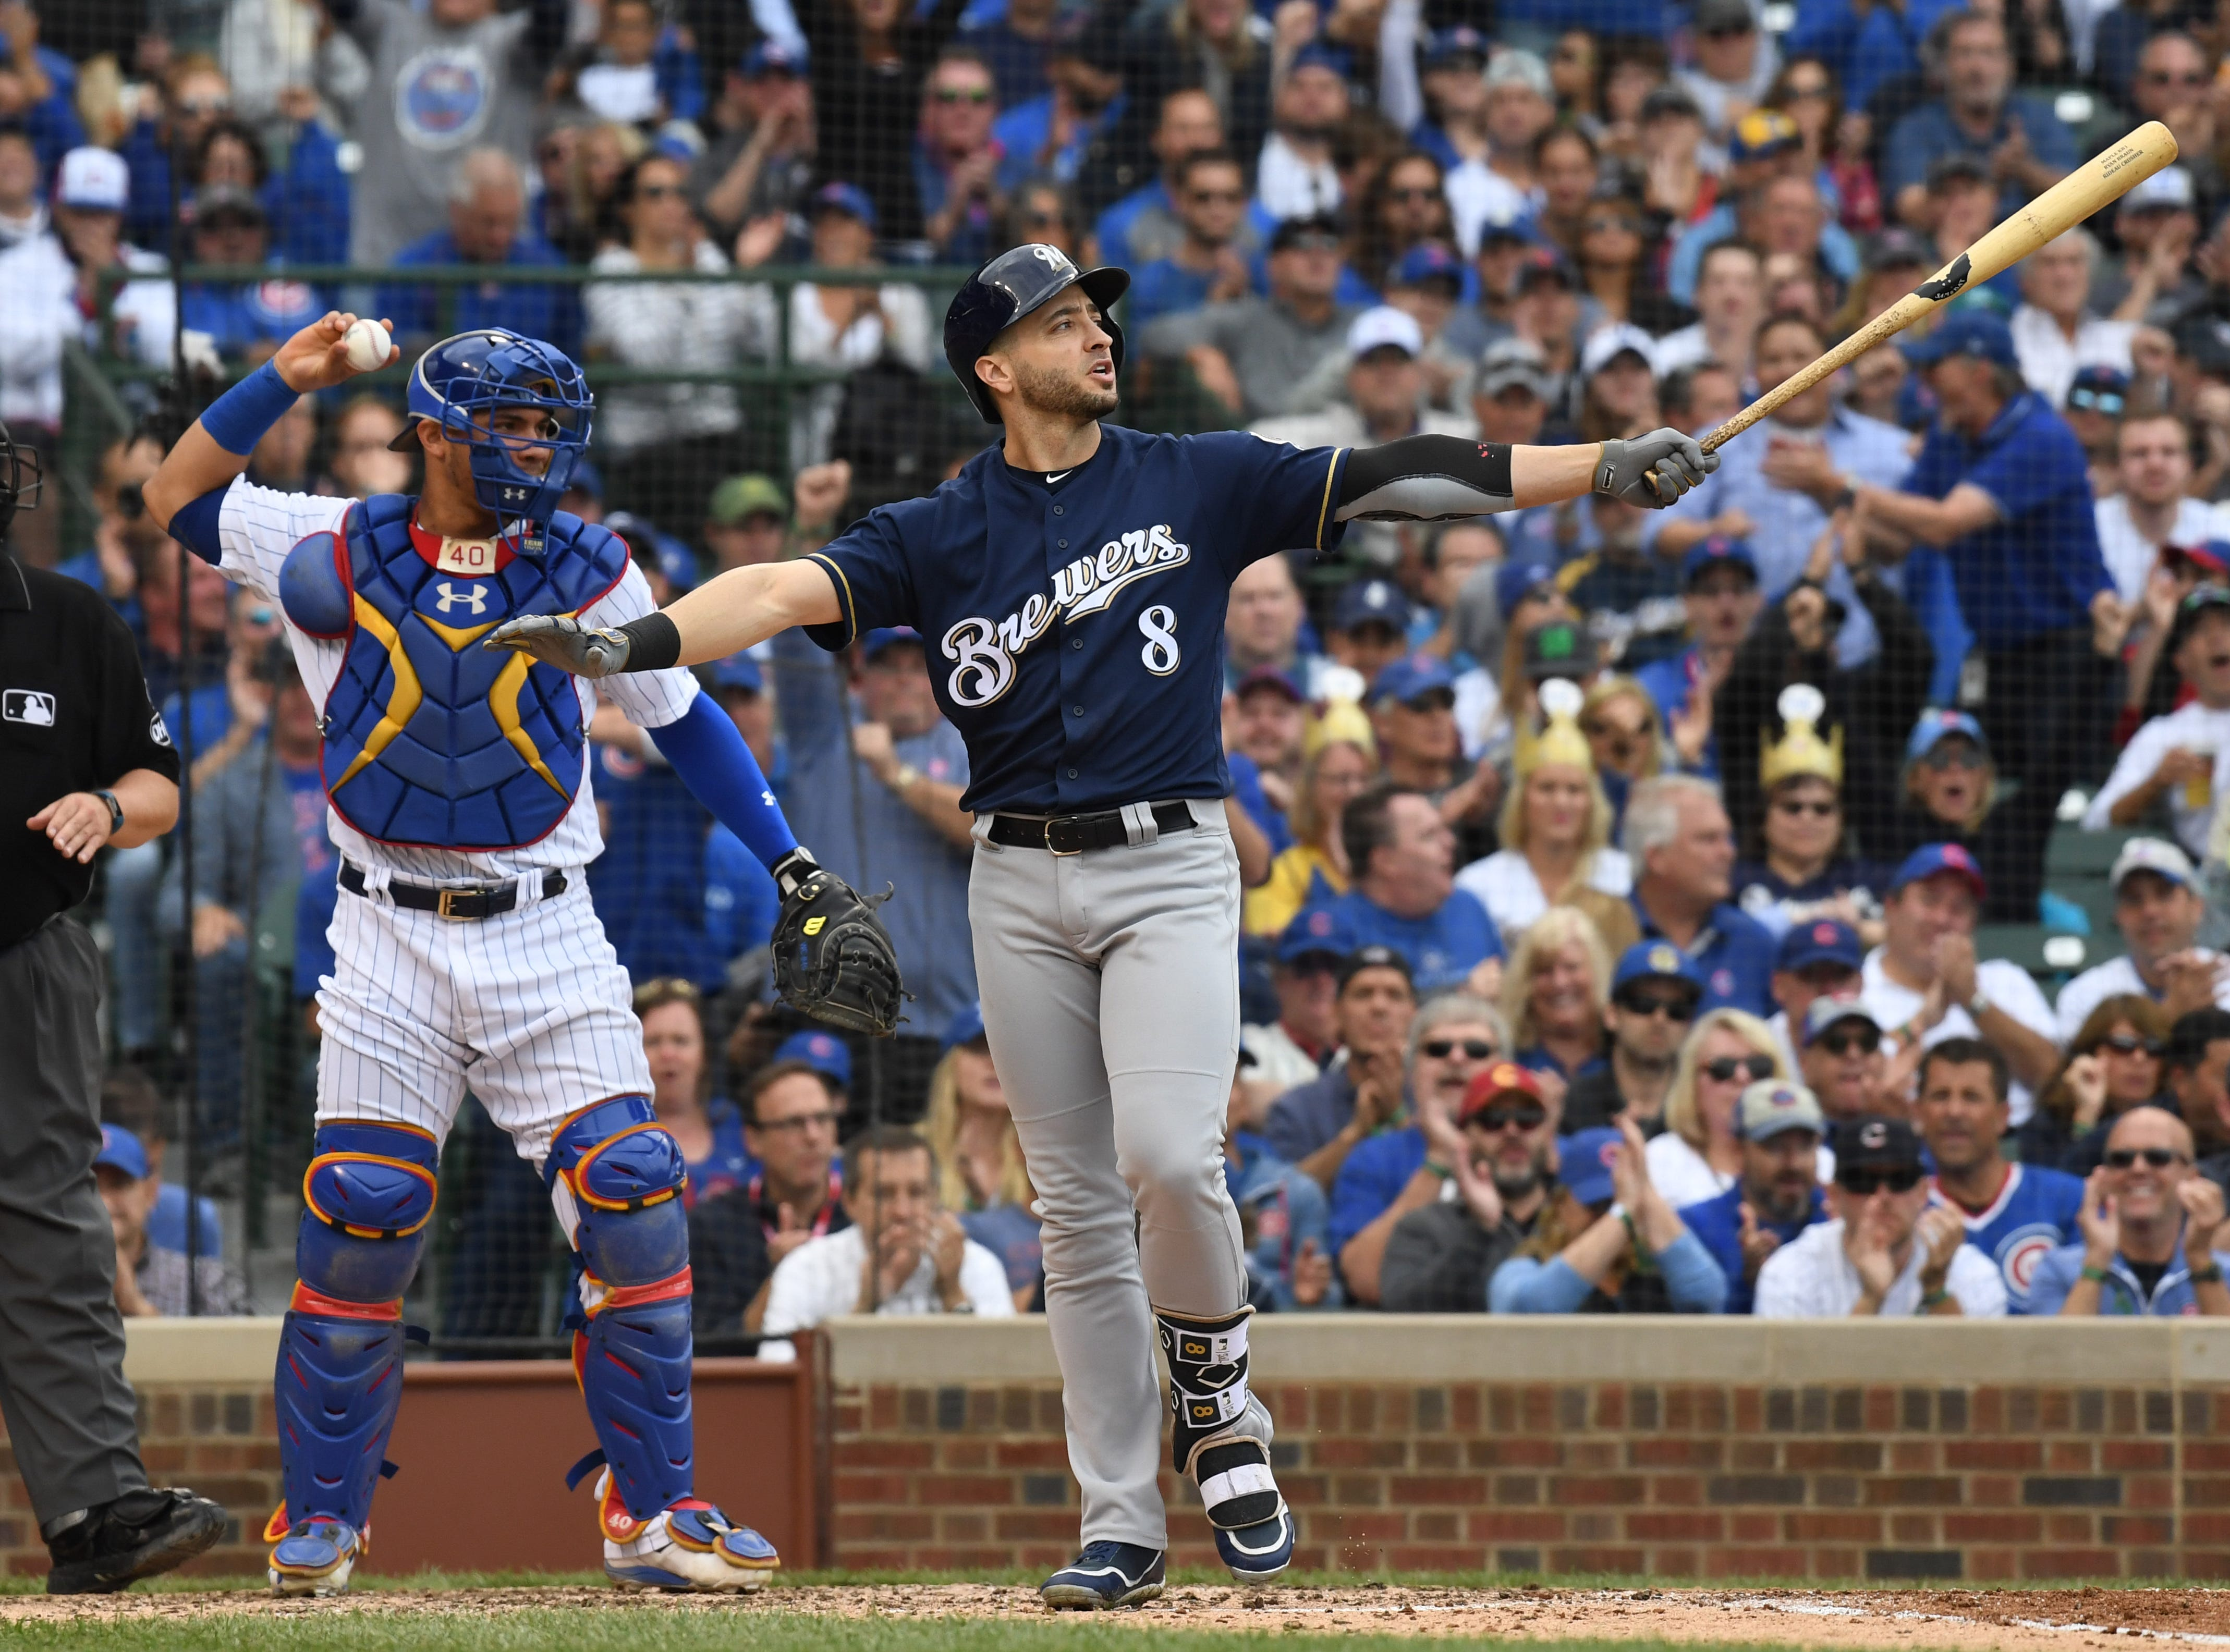 Brewers left fielder Ryan Braun (8) reacts after striking out in the sixth inning.